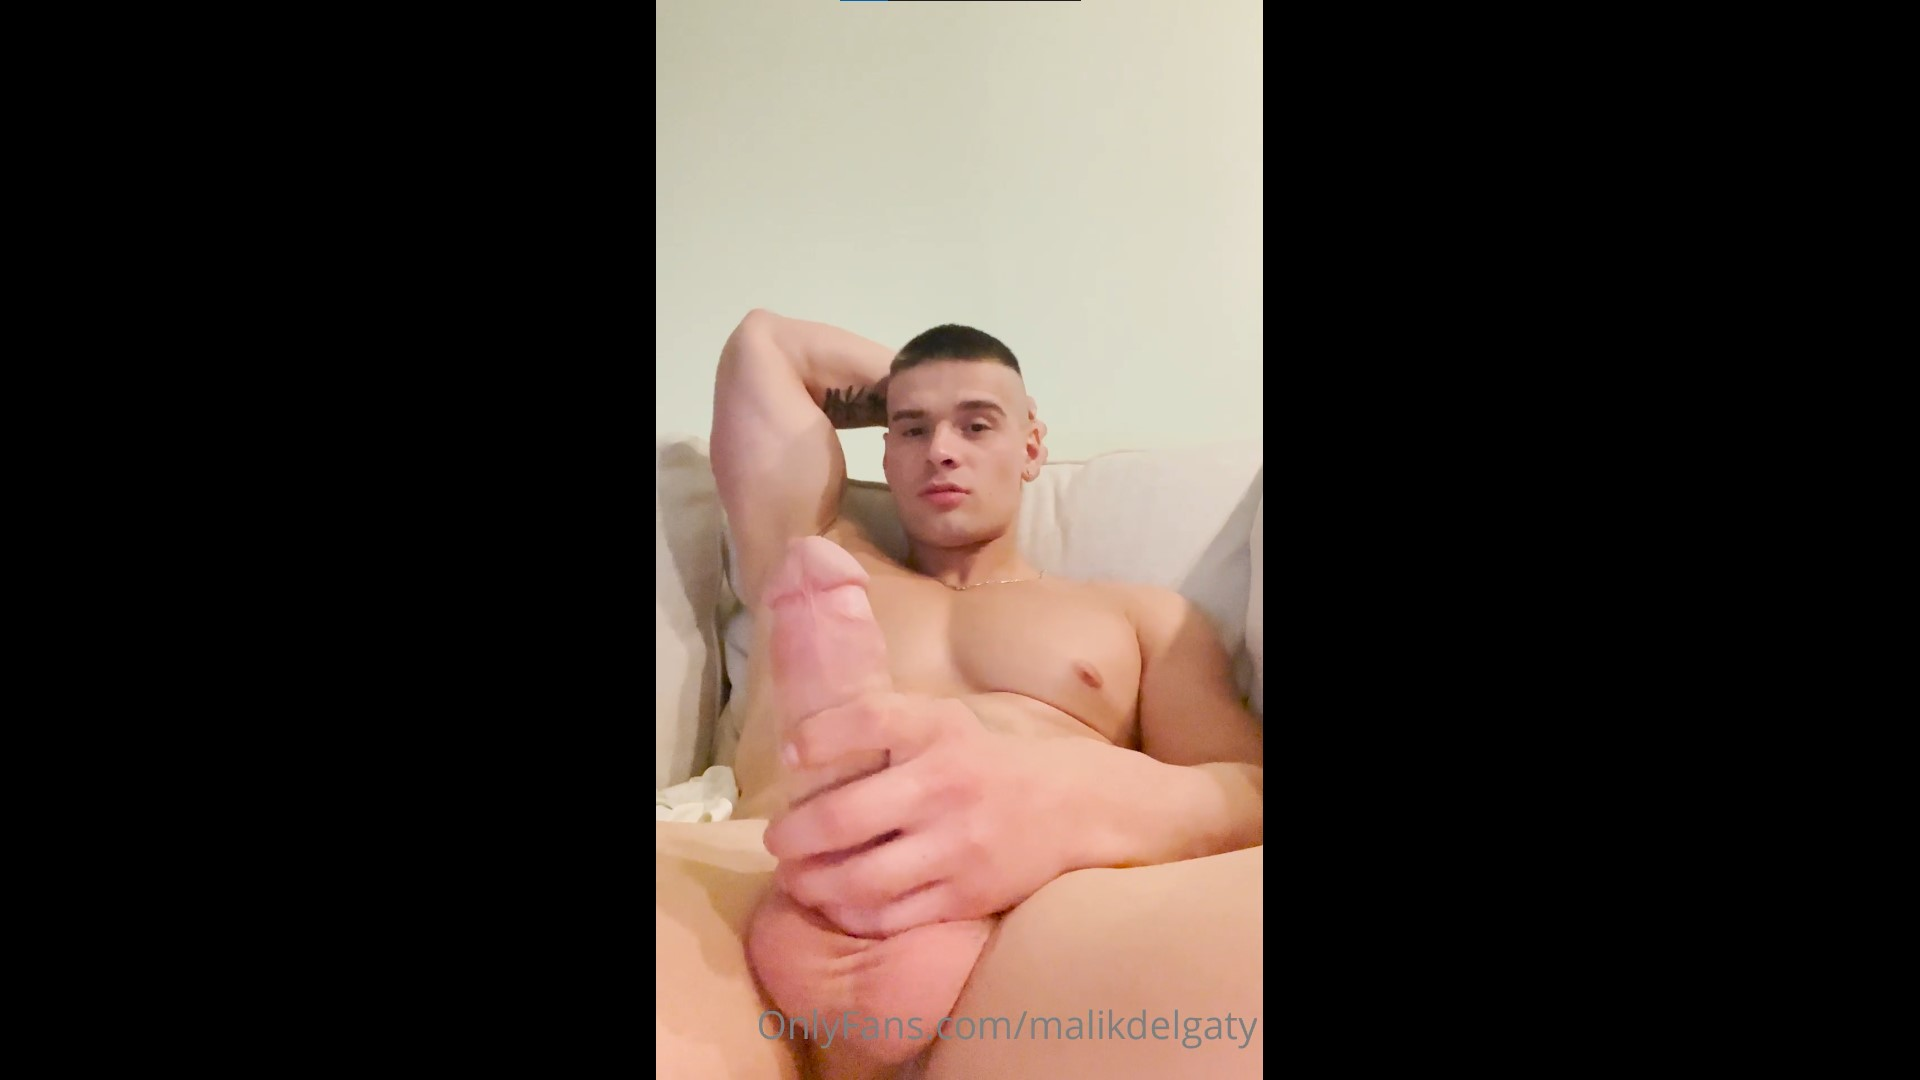 Hanging out naked while playing with my cock - Malik Delgaty